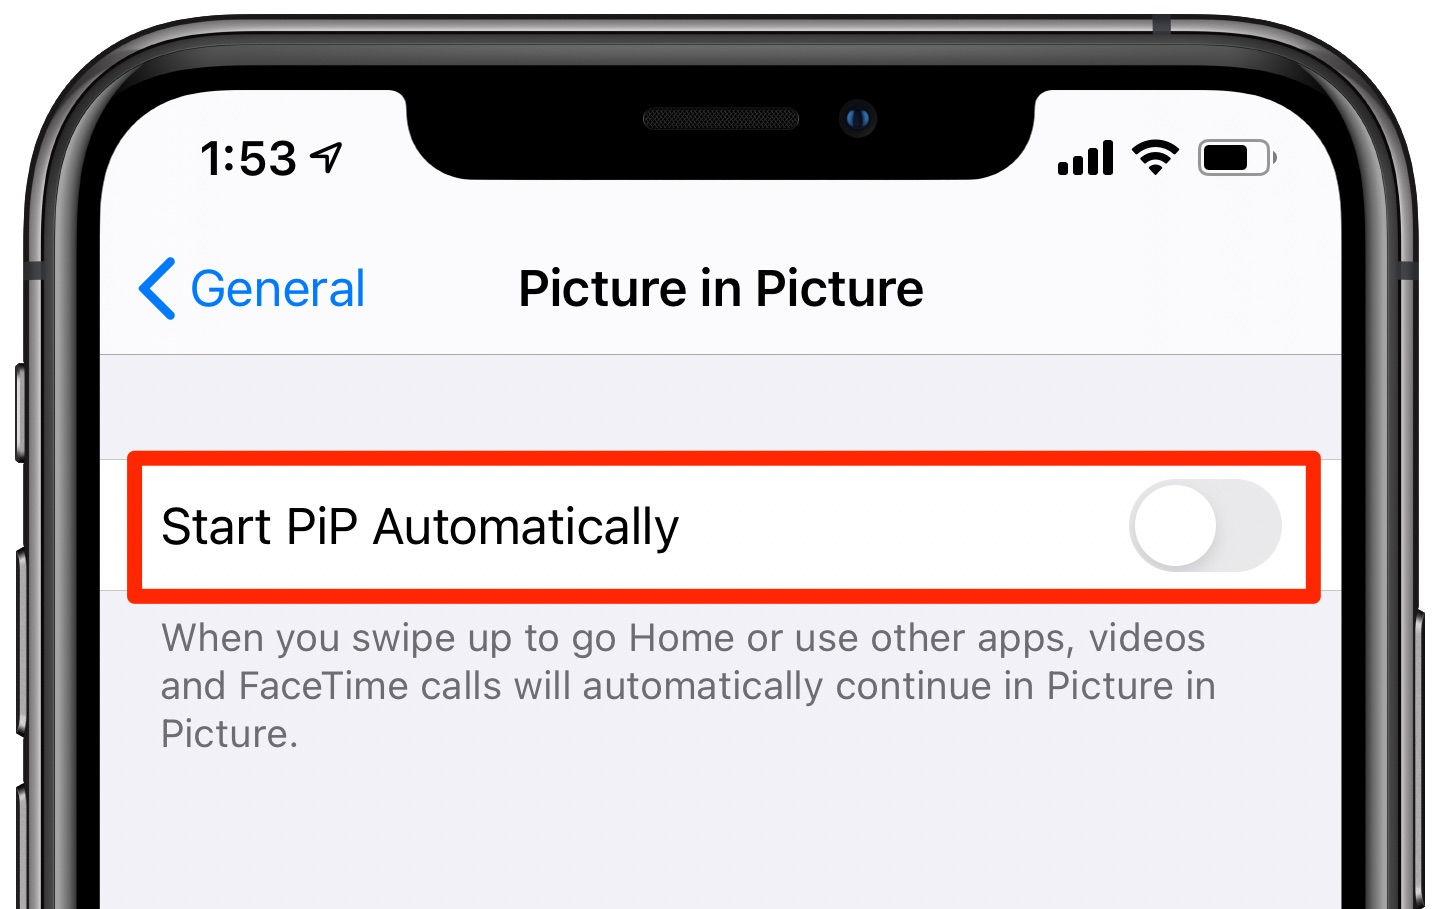 Picture in Picture on iPhone - the Start PiP Automatically setting is disabled